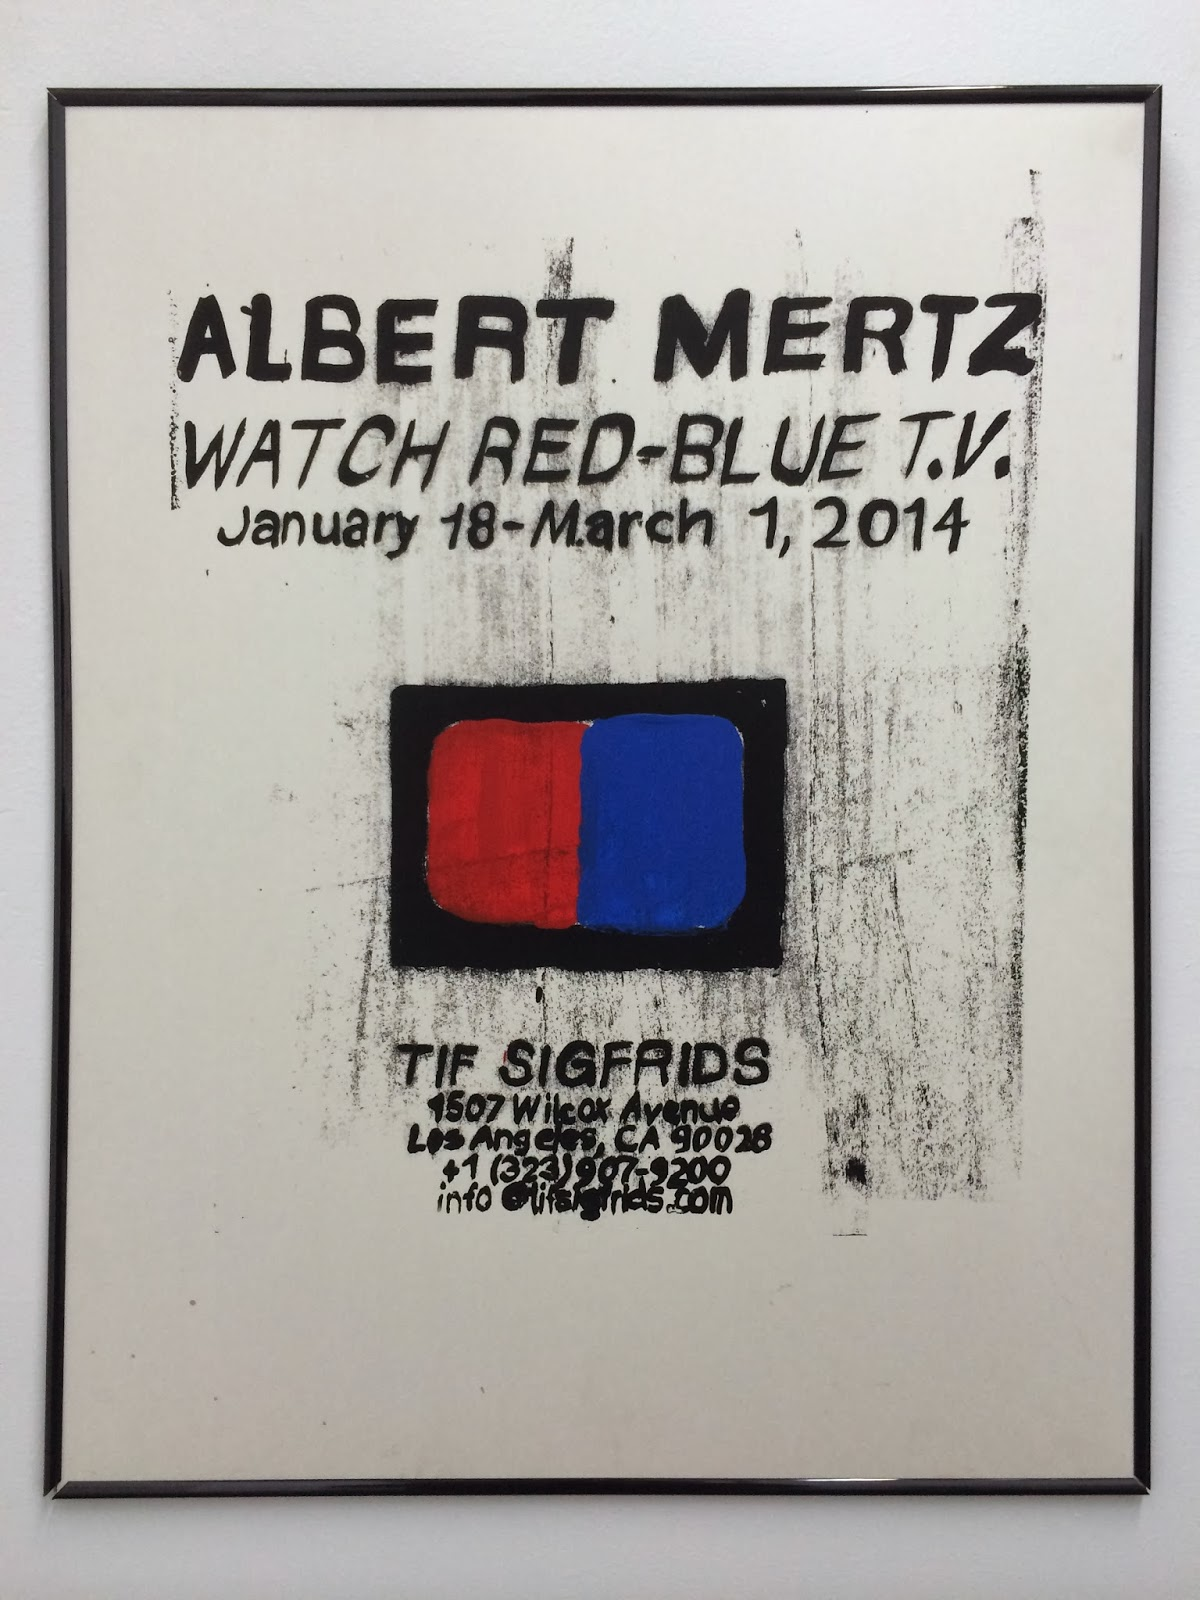 Albert Mertz - Watch Red-Blue T.V.